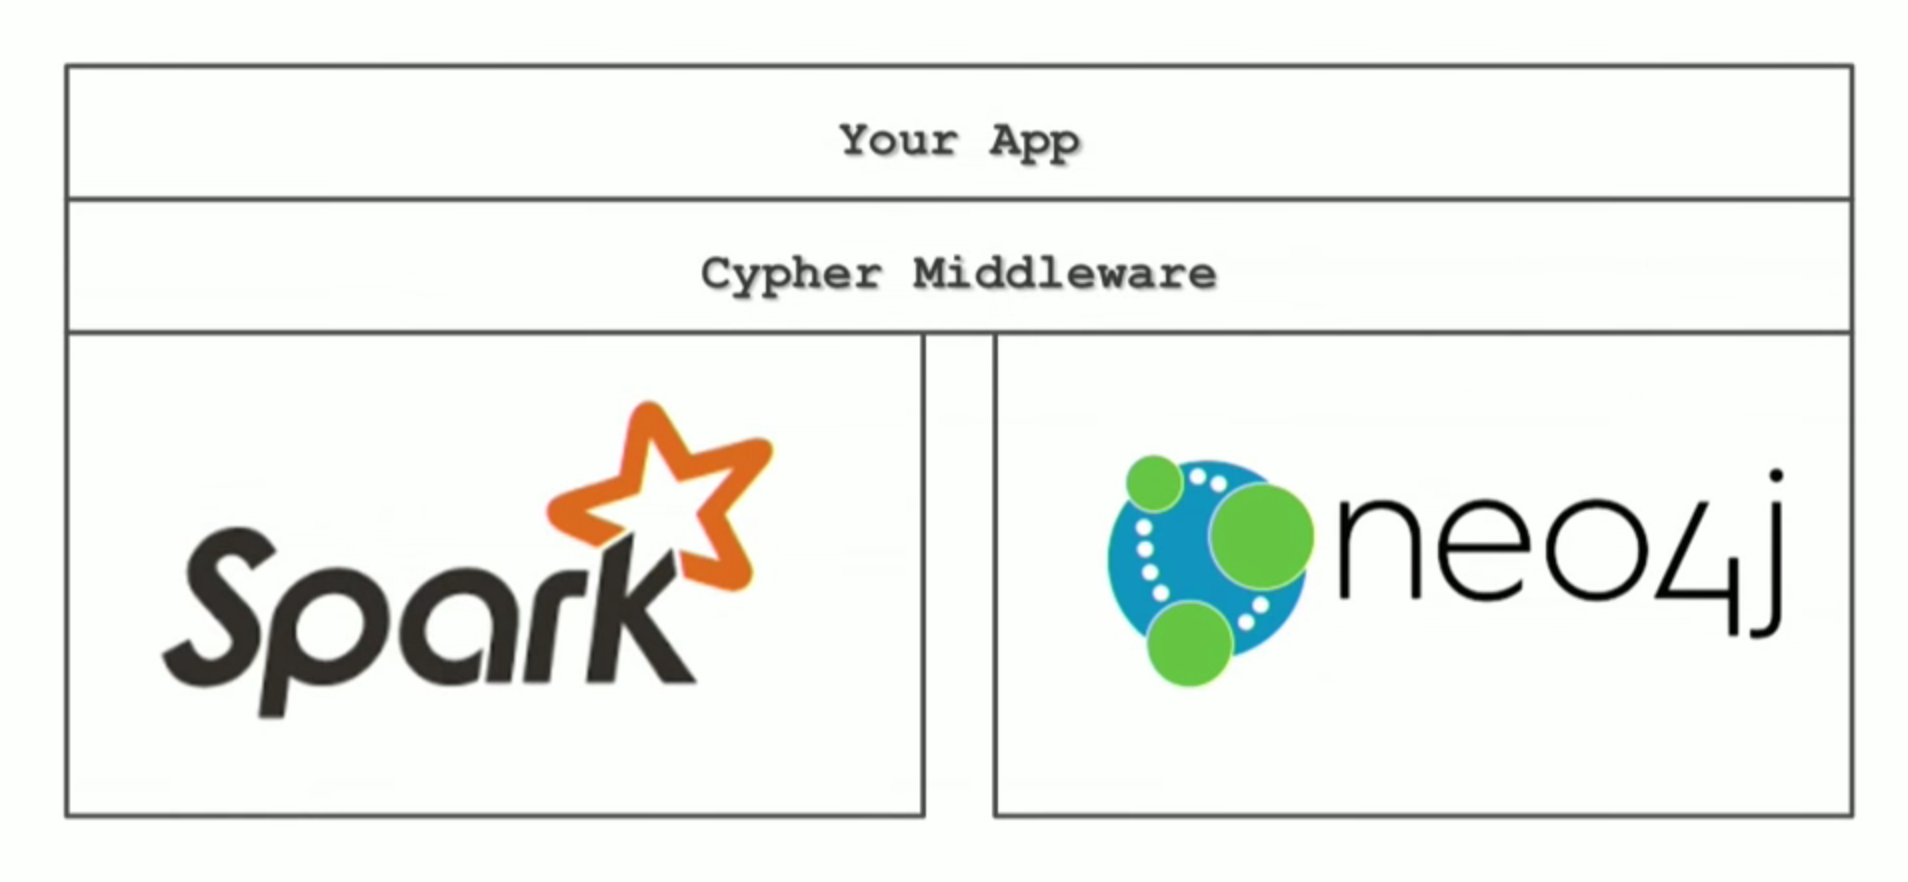 Future Cypher Middleware for Apache Spark and Neo4j